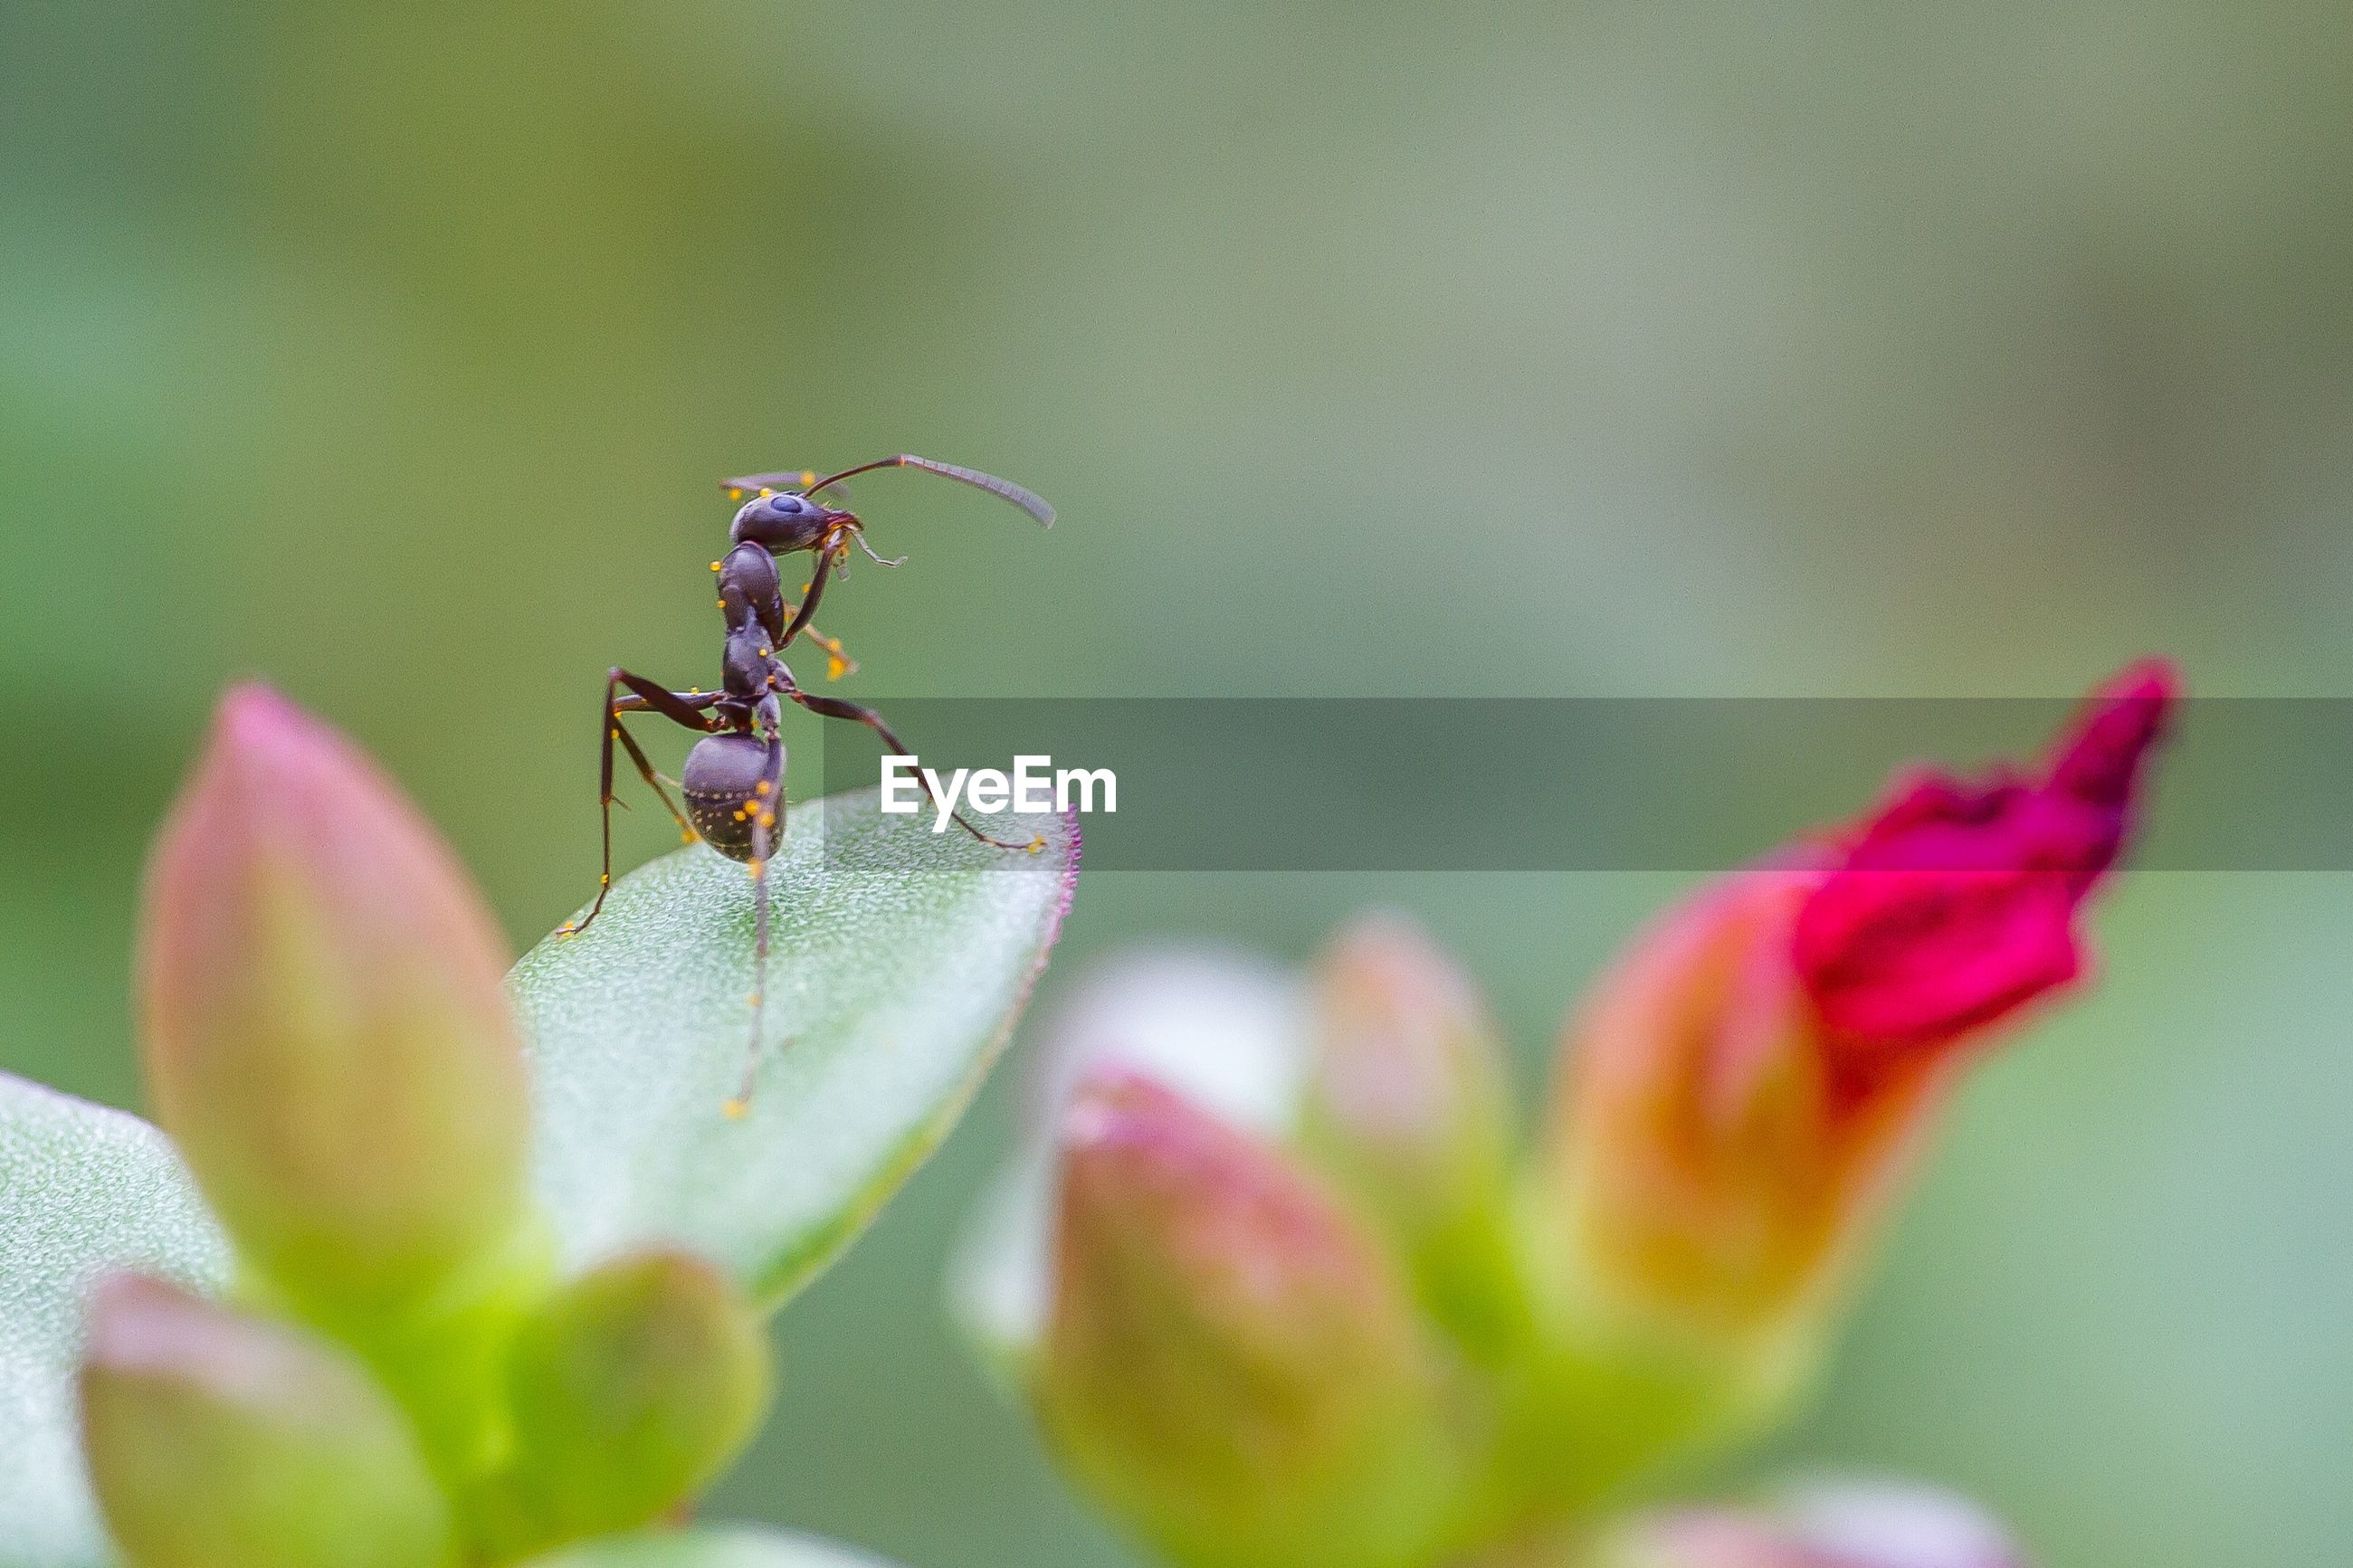 Ant on plant in park